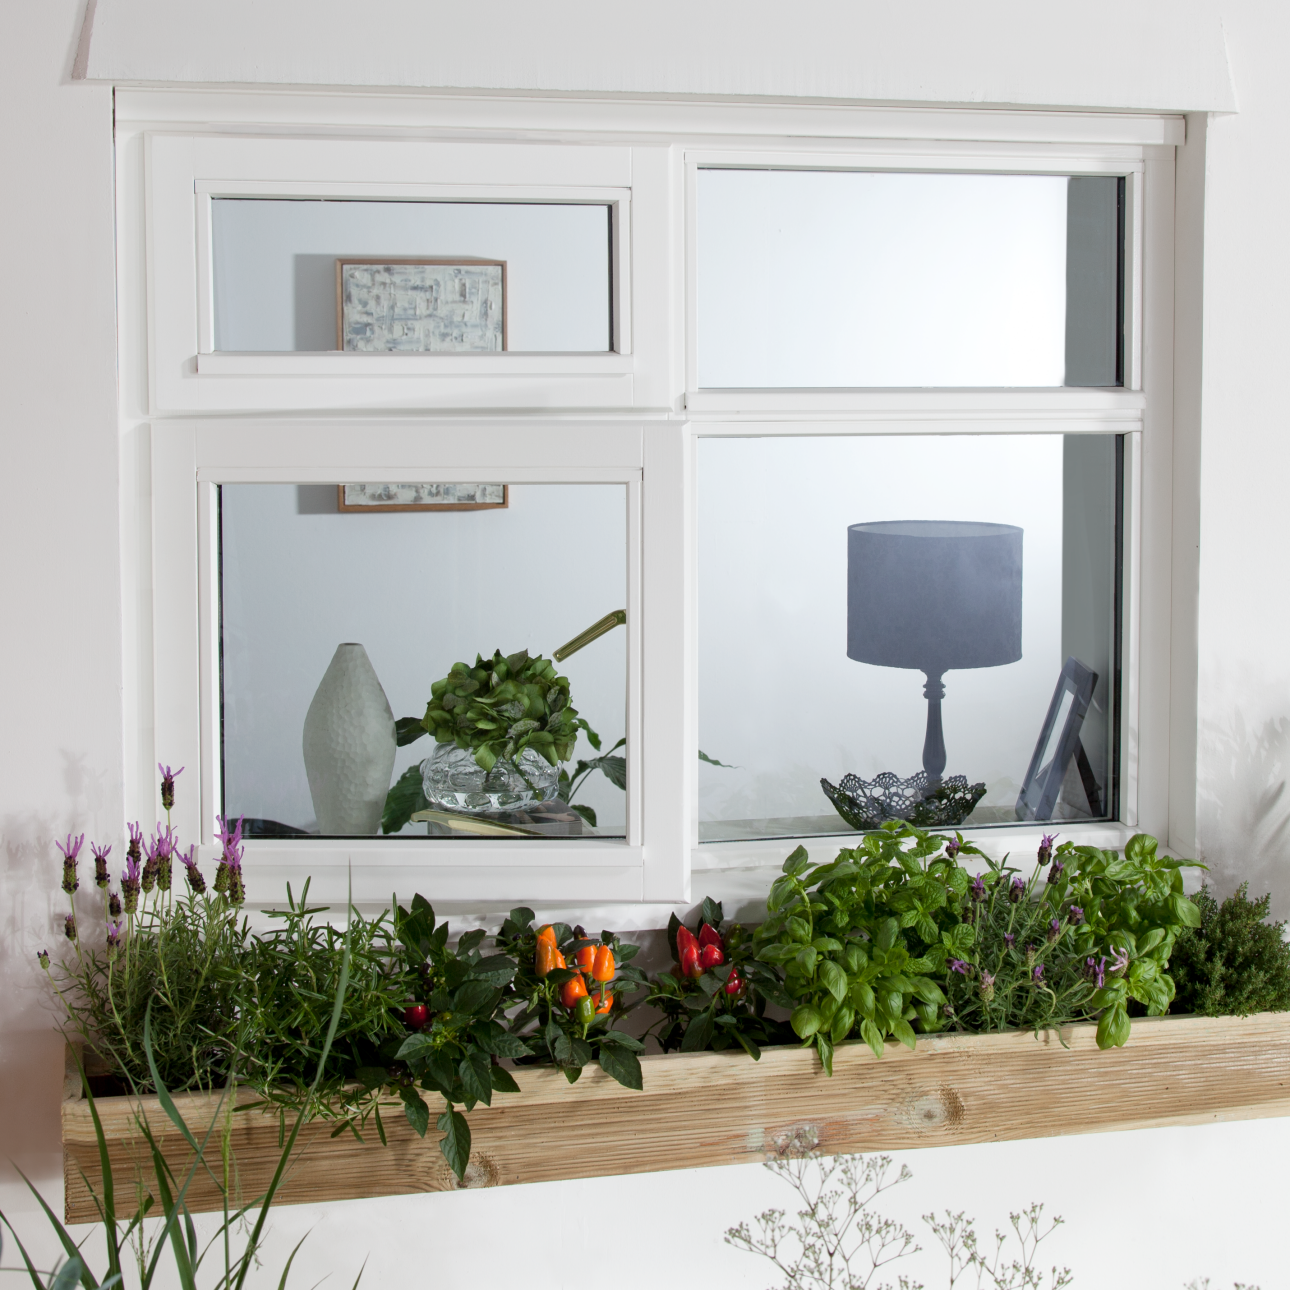 Exterior shot of square UPVC window, with window box full of flowers below